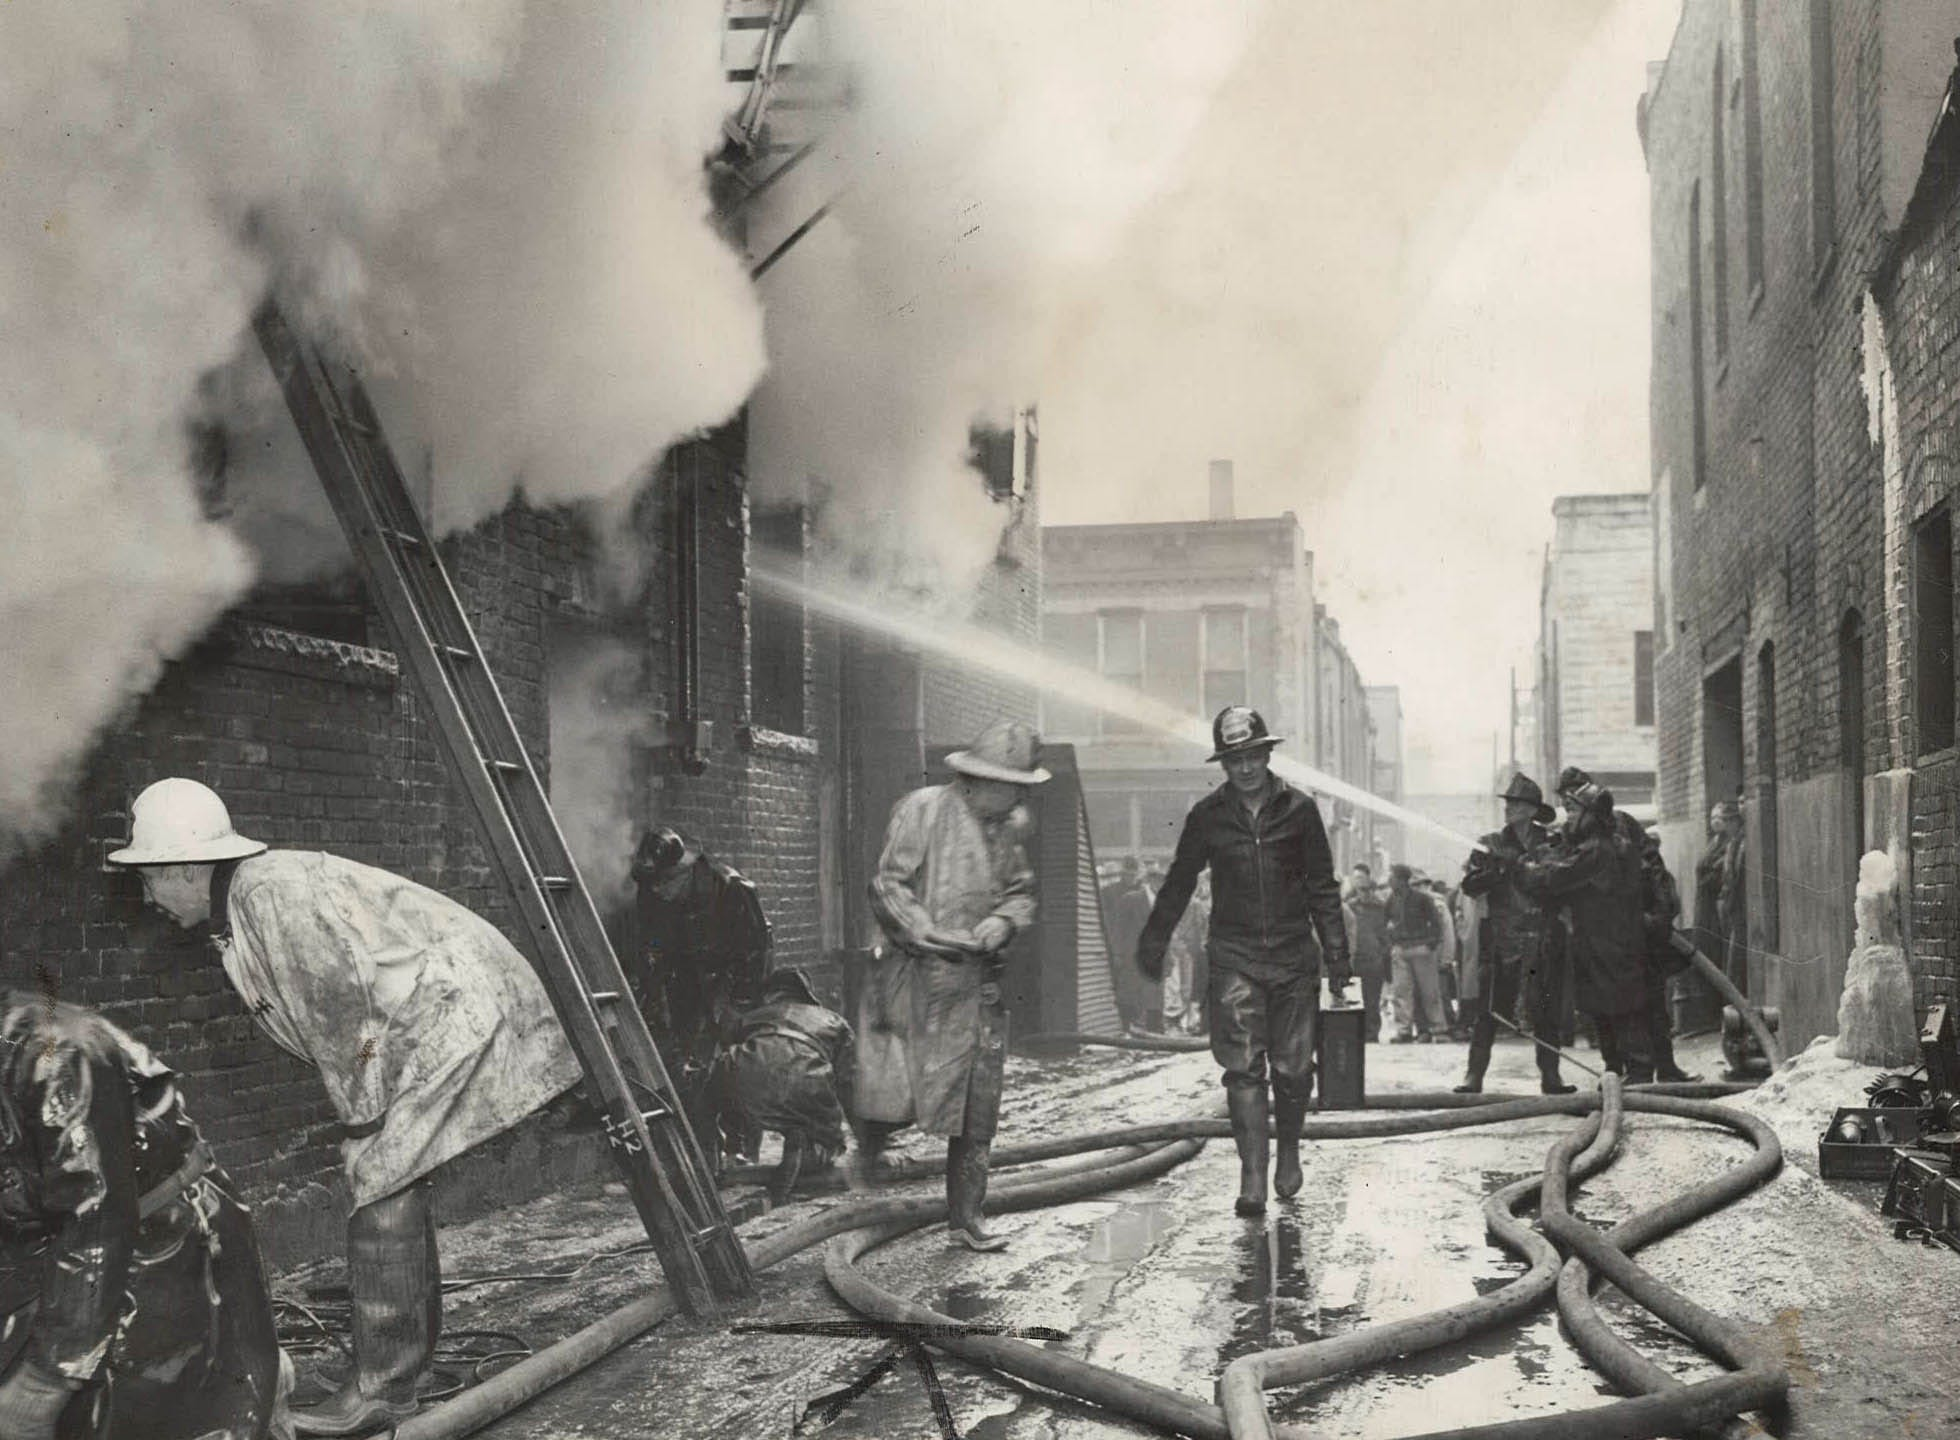 From the archives: Photos of Des Moines firefighters since 1930